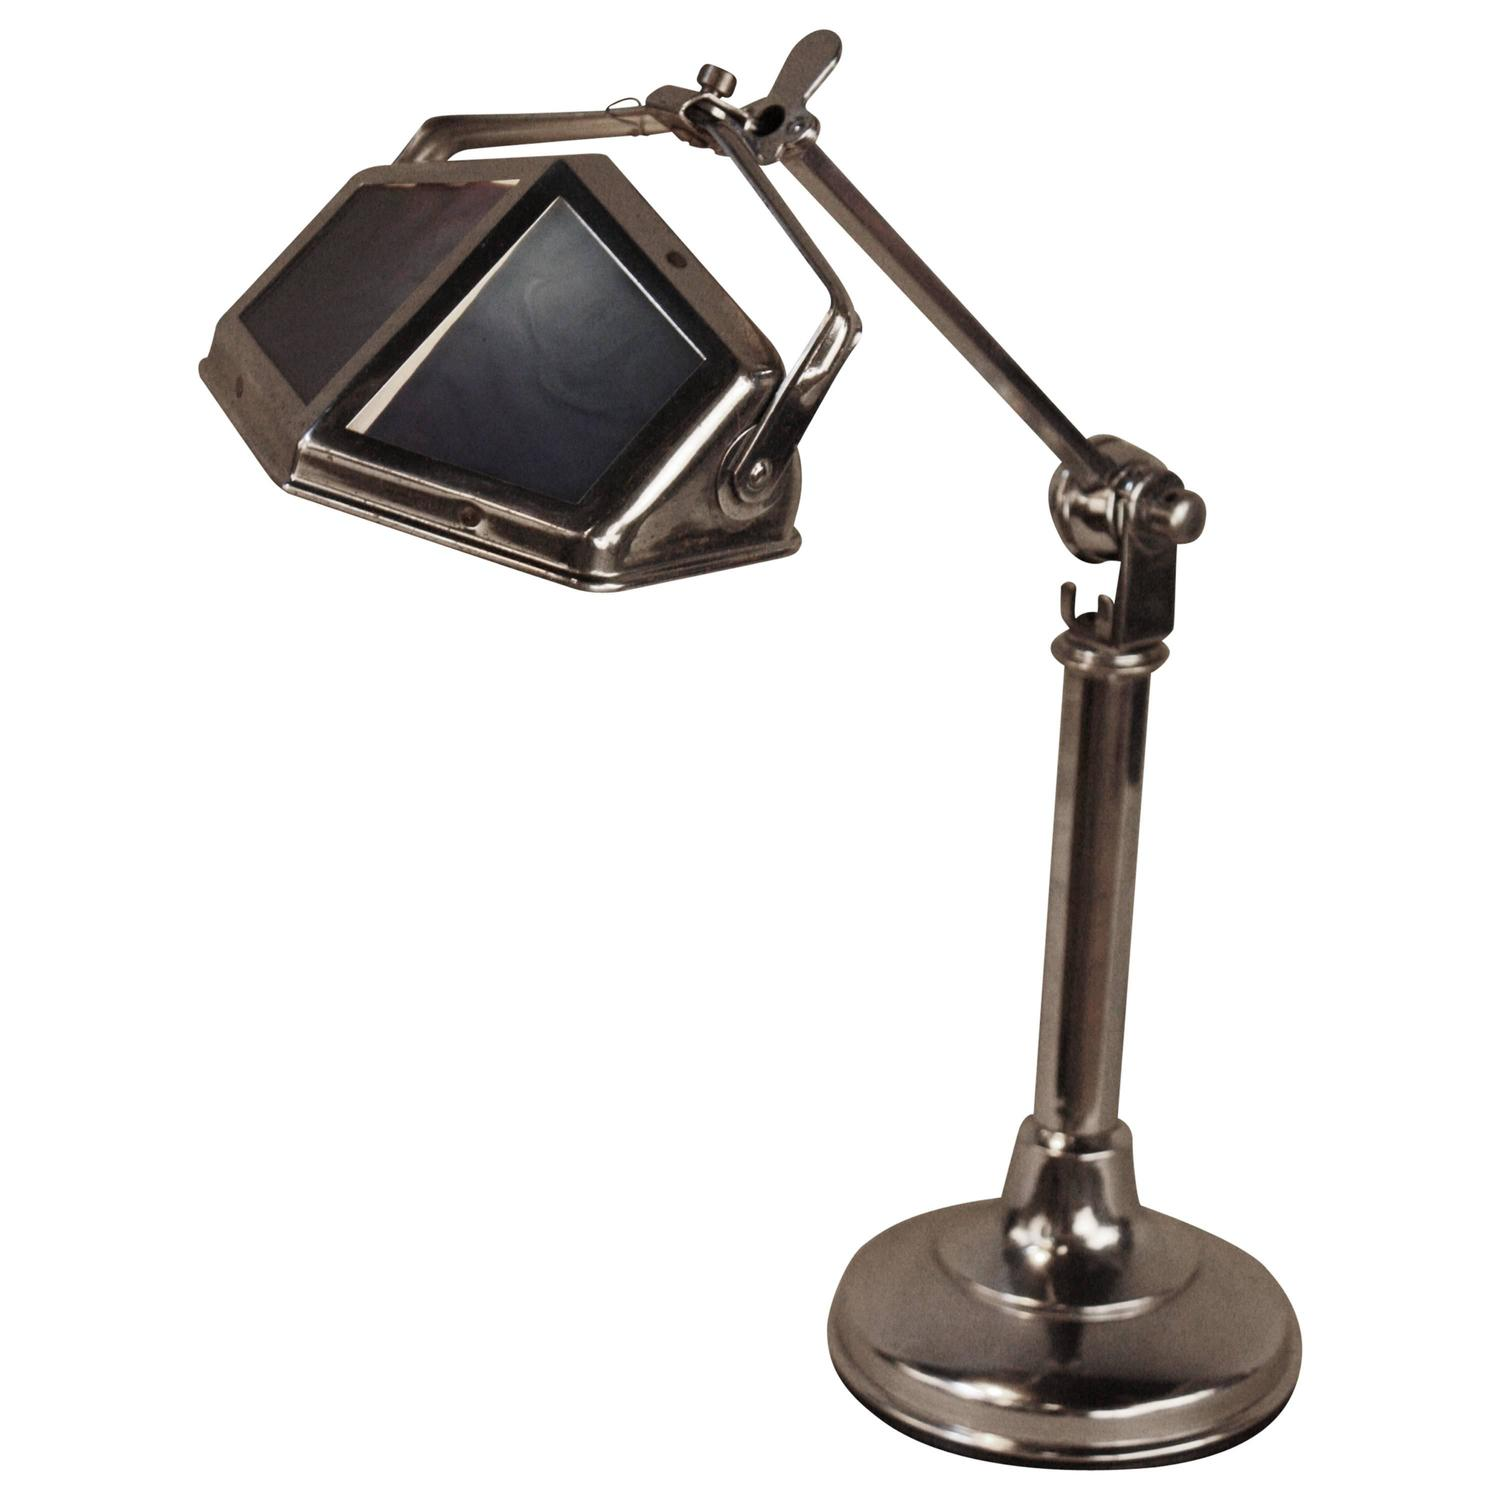 french art deco adjustable table lamp by pirouette for sale at 1stdibs. Black Bedroom Furniture Sets. Home Design Ideas